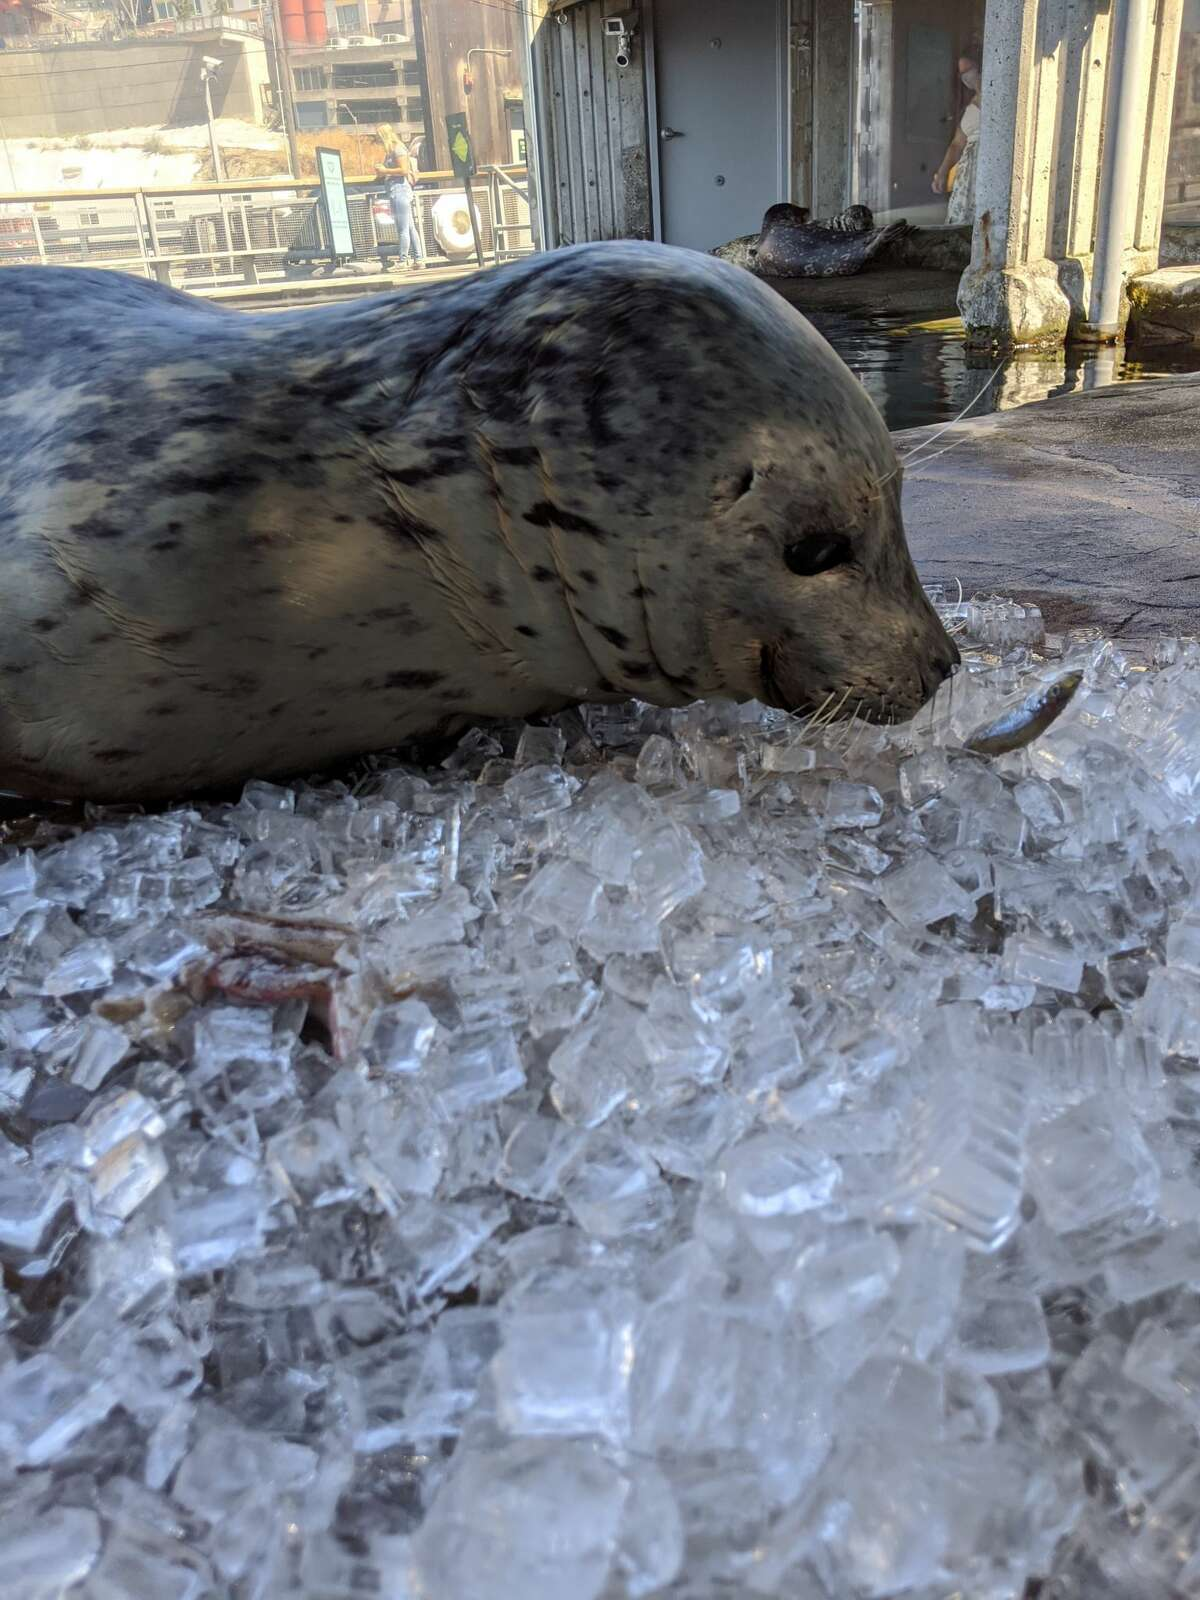 The Aquarium provides daily enrichment to its animals every day to encourage natural behaviors. Did you know that harbor seals use their sensitive whiskers to find fish in the wild? In this photo, Barney the harbor seal uses his whiskers to help him find fish in the pile of ice.